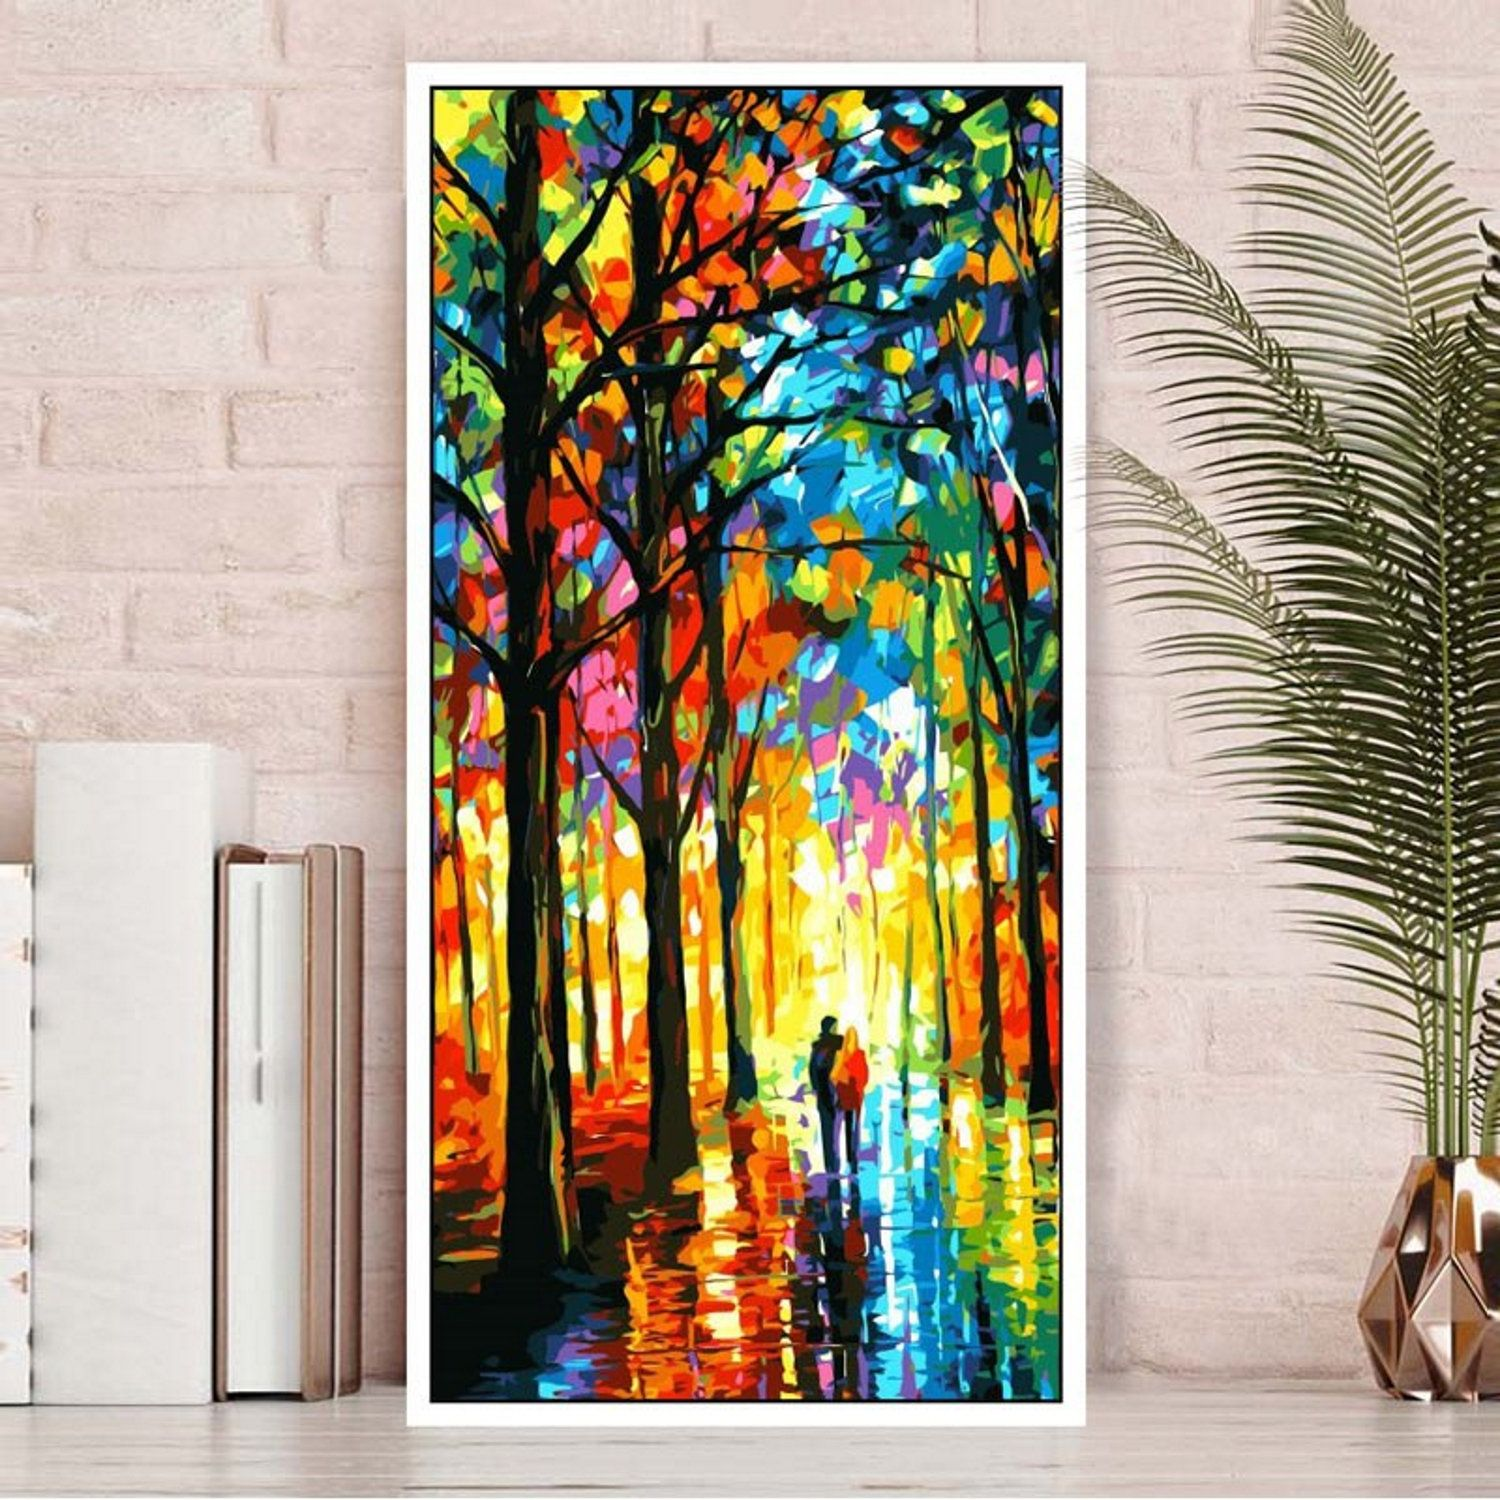 Landscape Paint By Number Kit Large Wall Art Forest Diy Kit Painting On Canvas Home Decor Craft Kit For Adult D Forest Wall Art Large Wall Art Canvas Painting